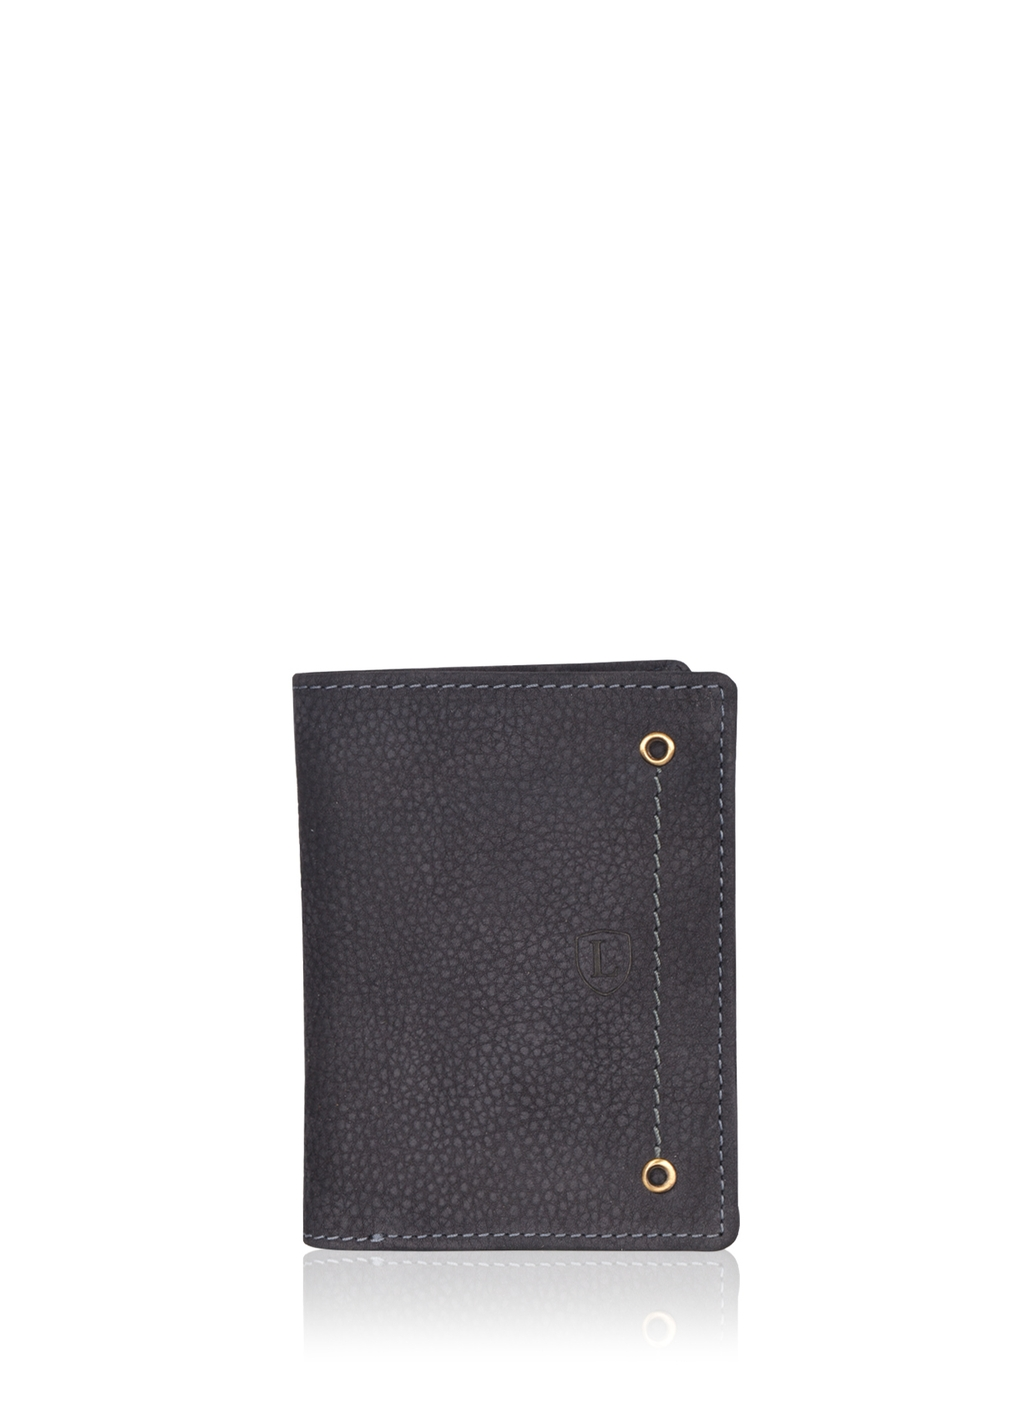 Edward Bi-Fold Leather Wallet in Navy Blue